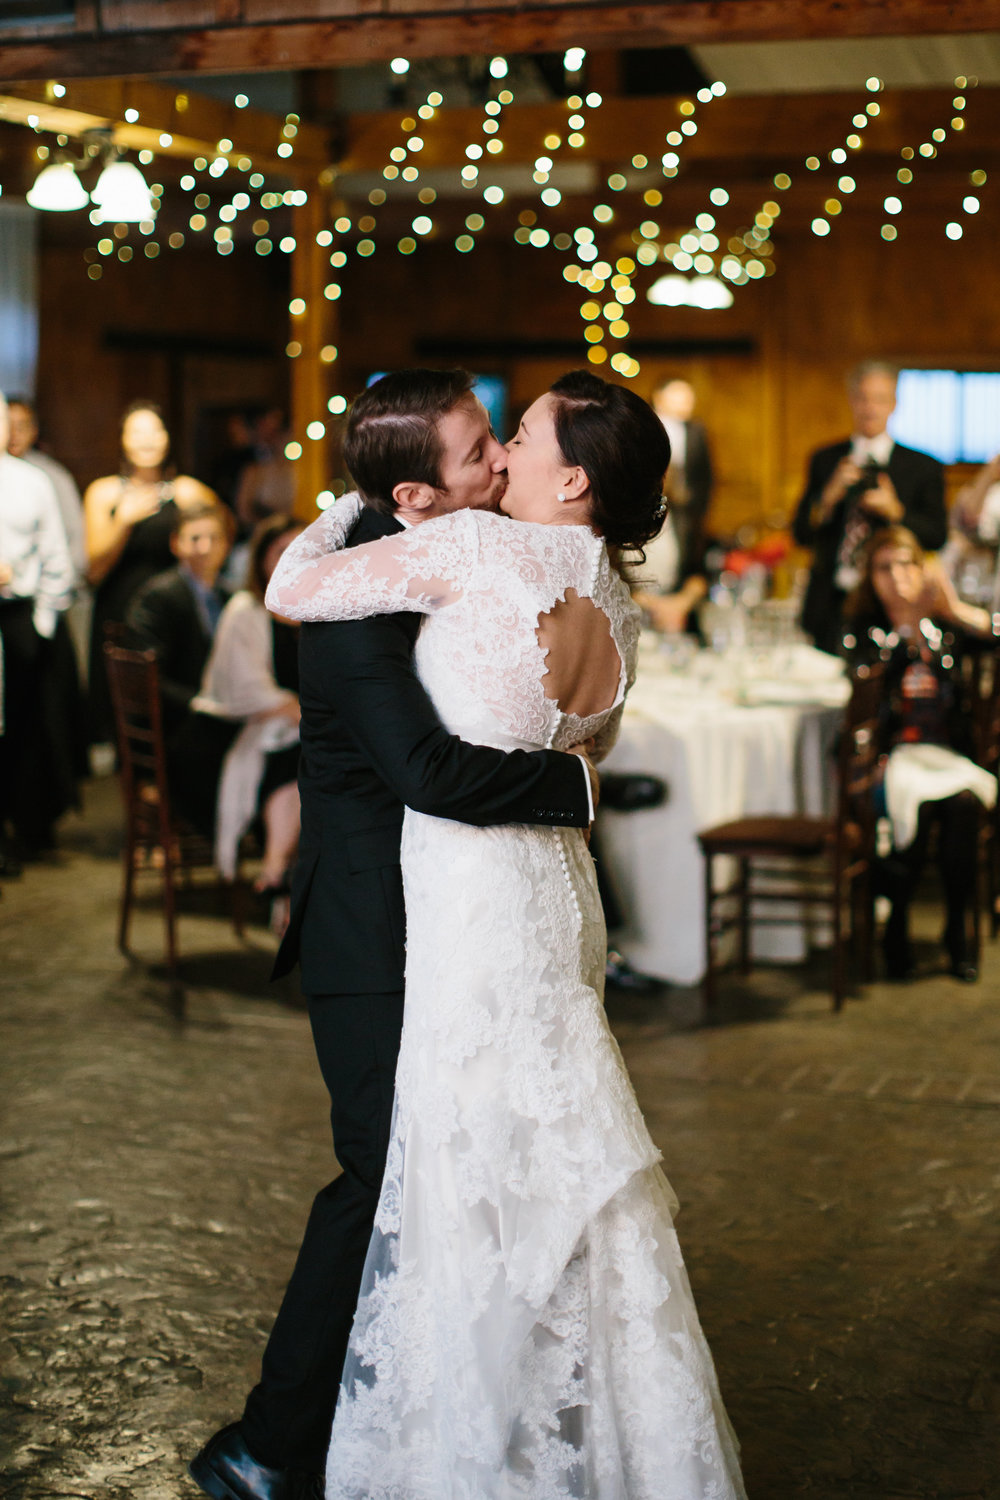 Korena + Andrew on October 12, 2015 ♥ Sarah Bradshaw Photography at The Stable at Bluemont Vineyard (Bluemont, VA)